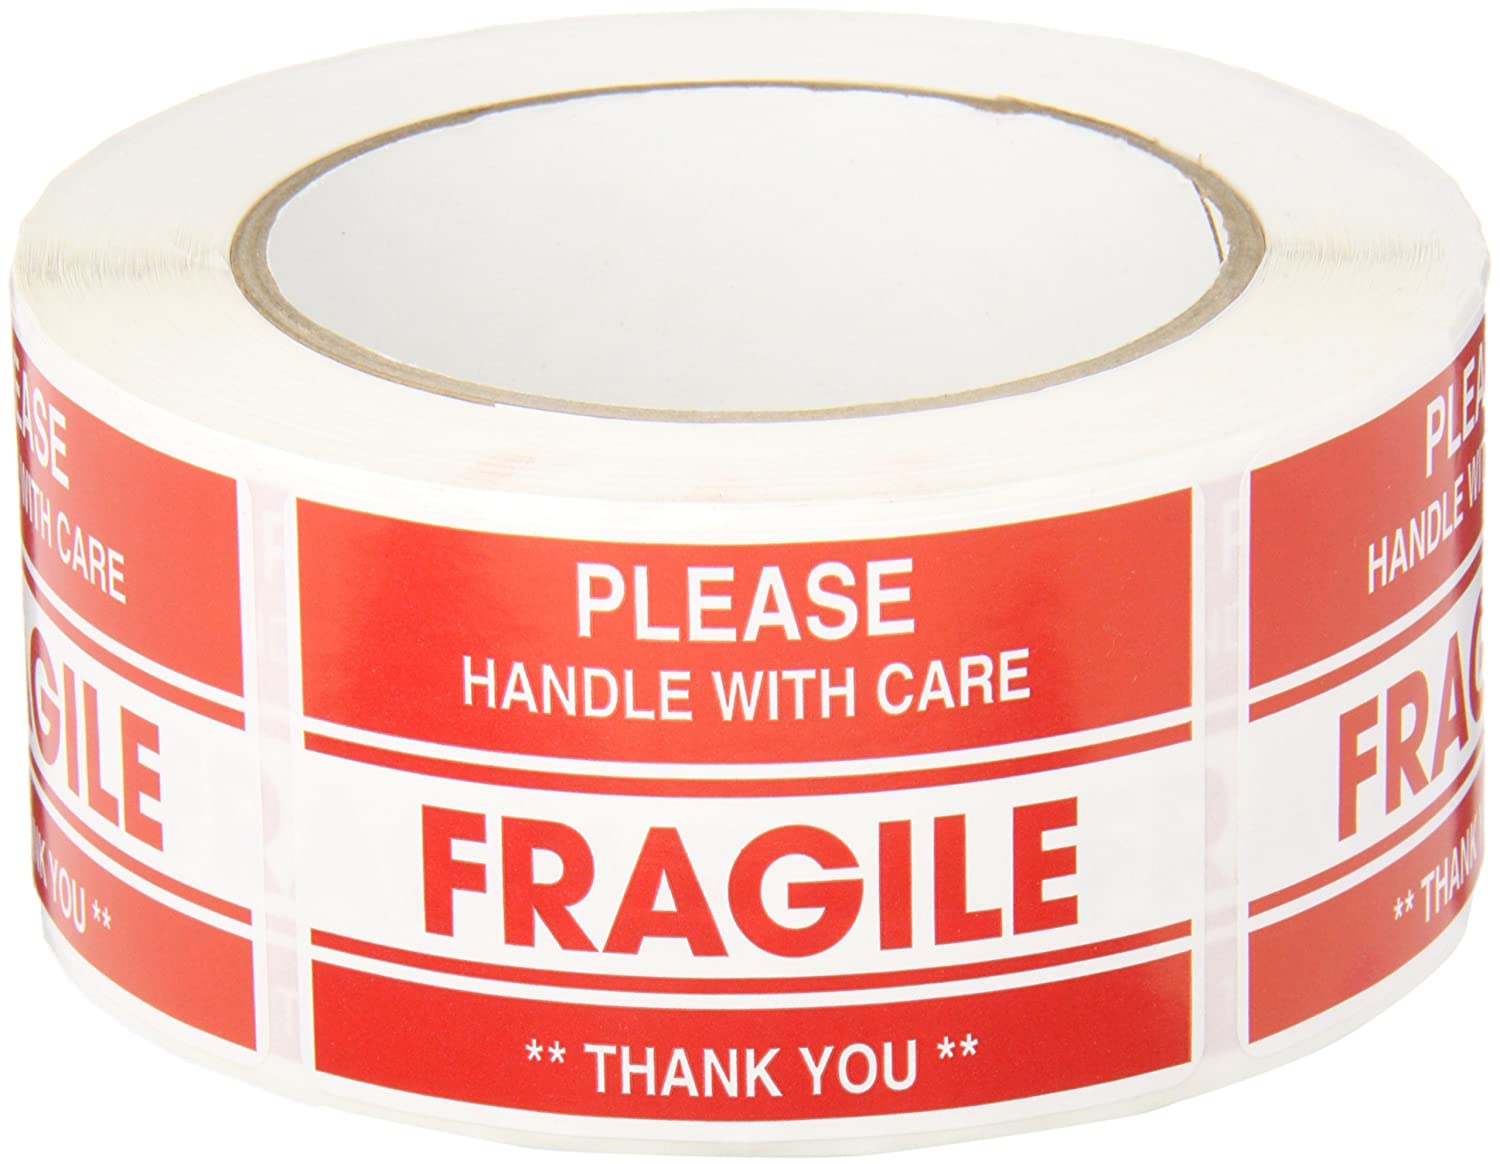 TapeCase Fragile, Thank You Label - 50 per pack (1 Pack) TapeCase Fragile SHIPLBL-041-50